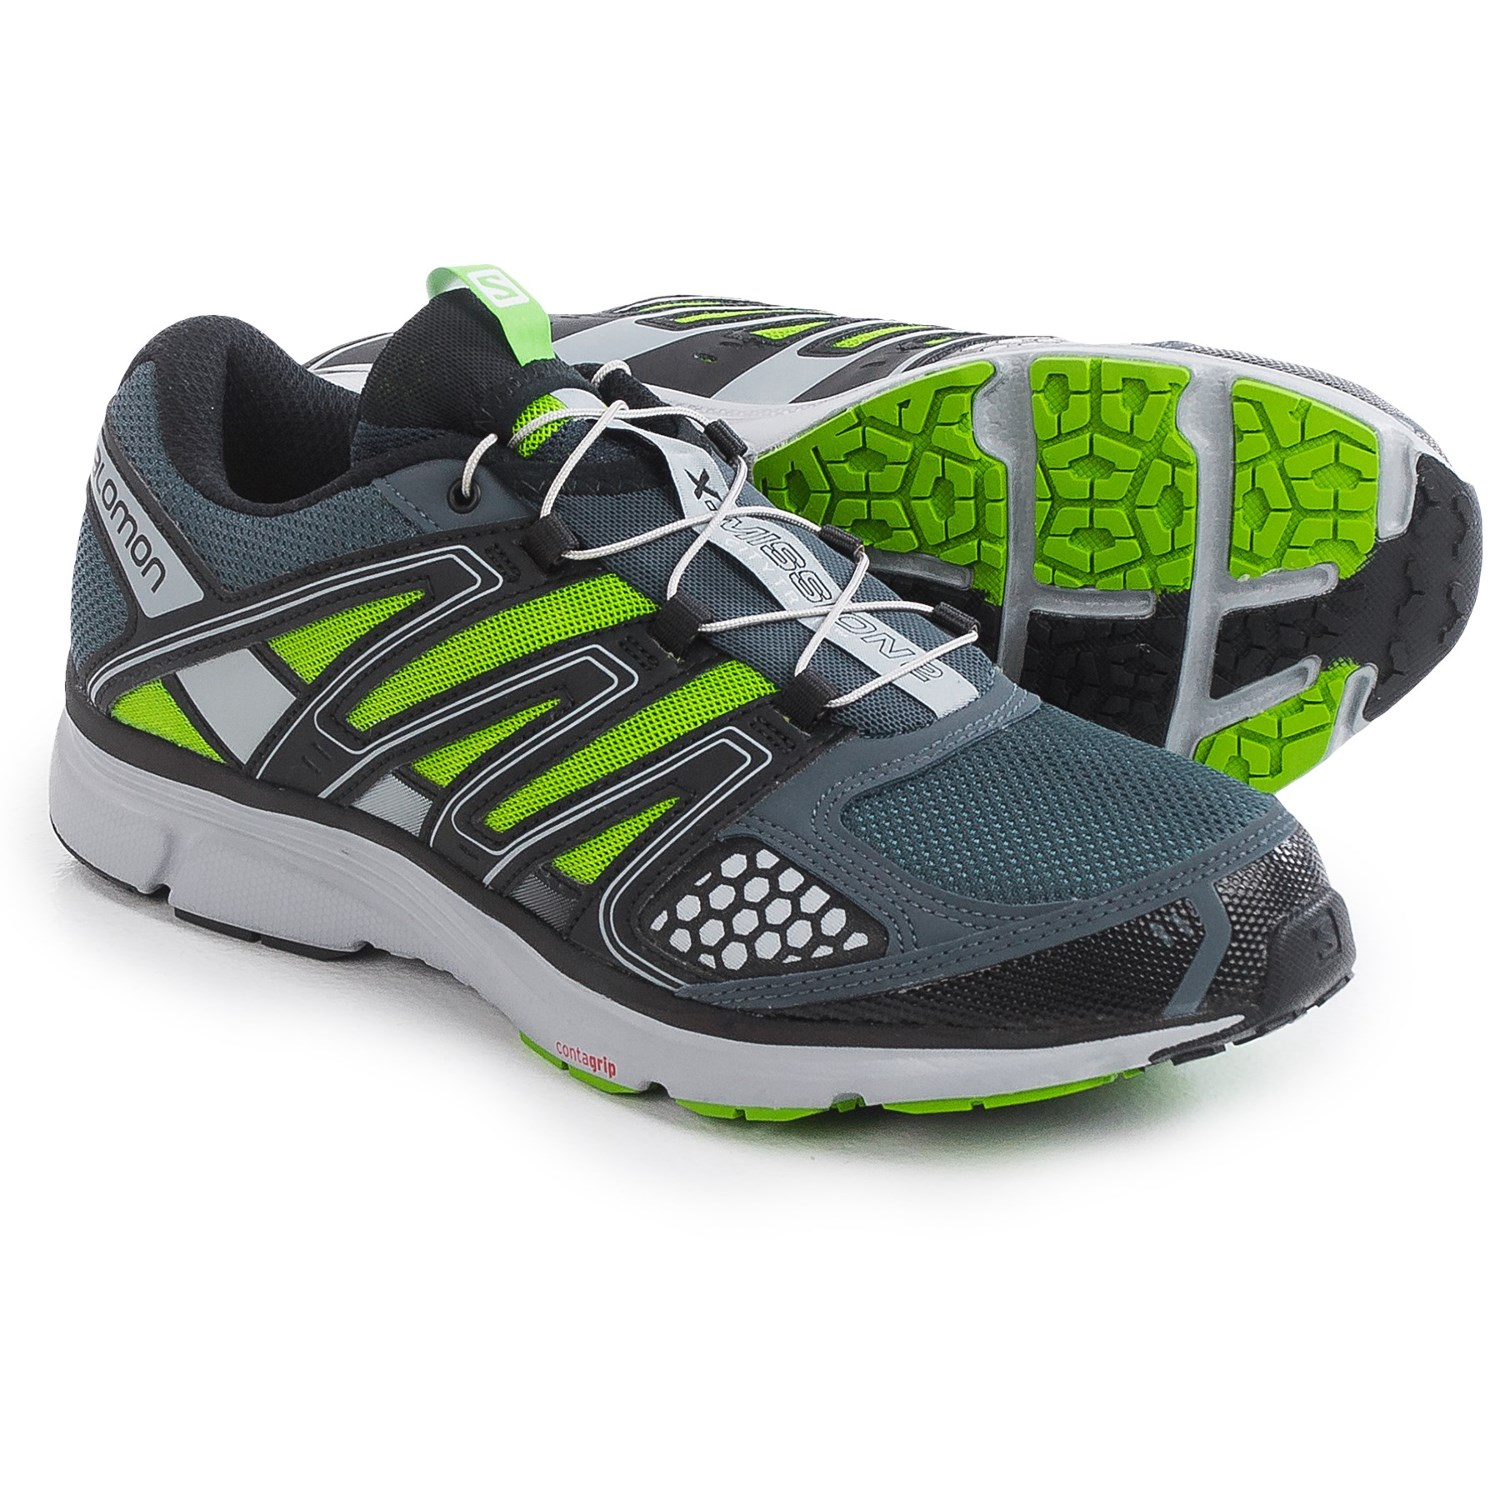 Clearance Salomon Trail Running Shoes